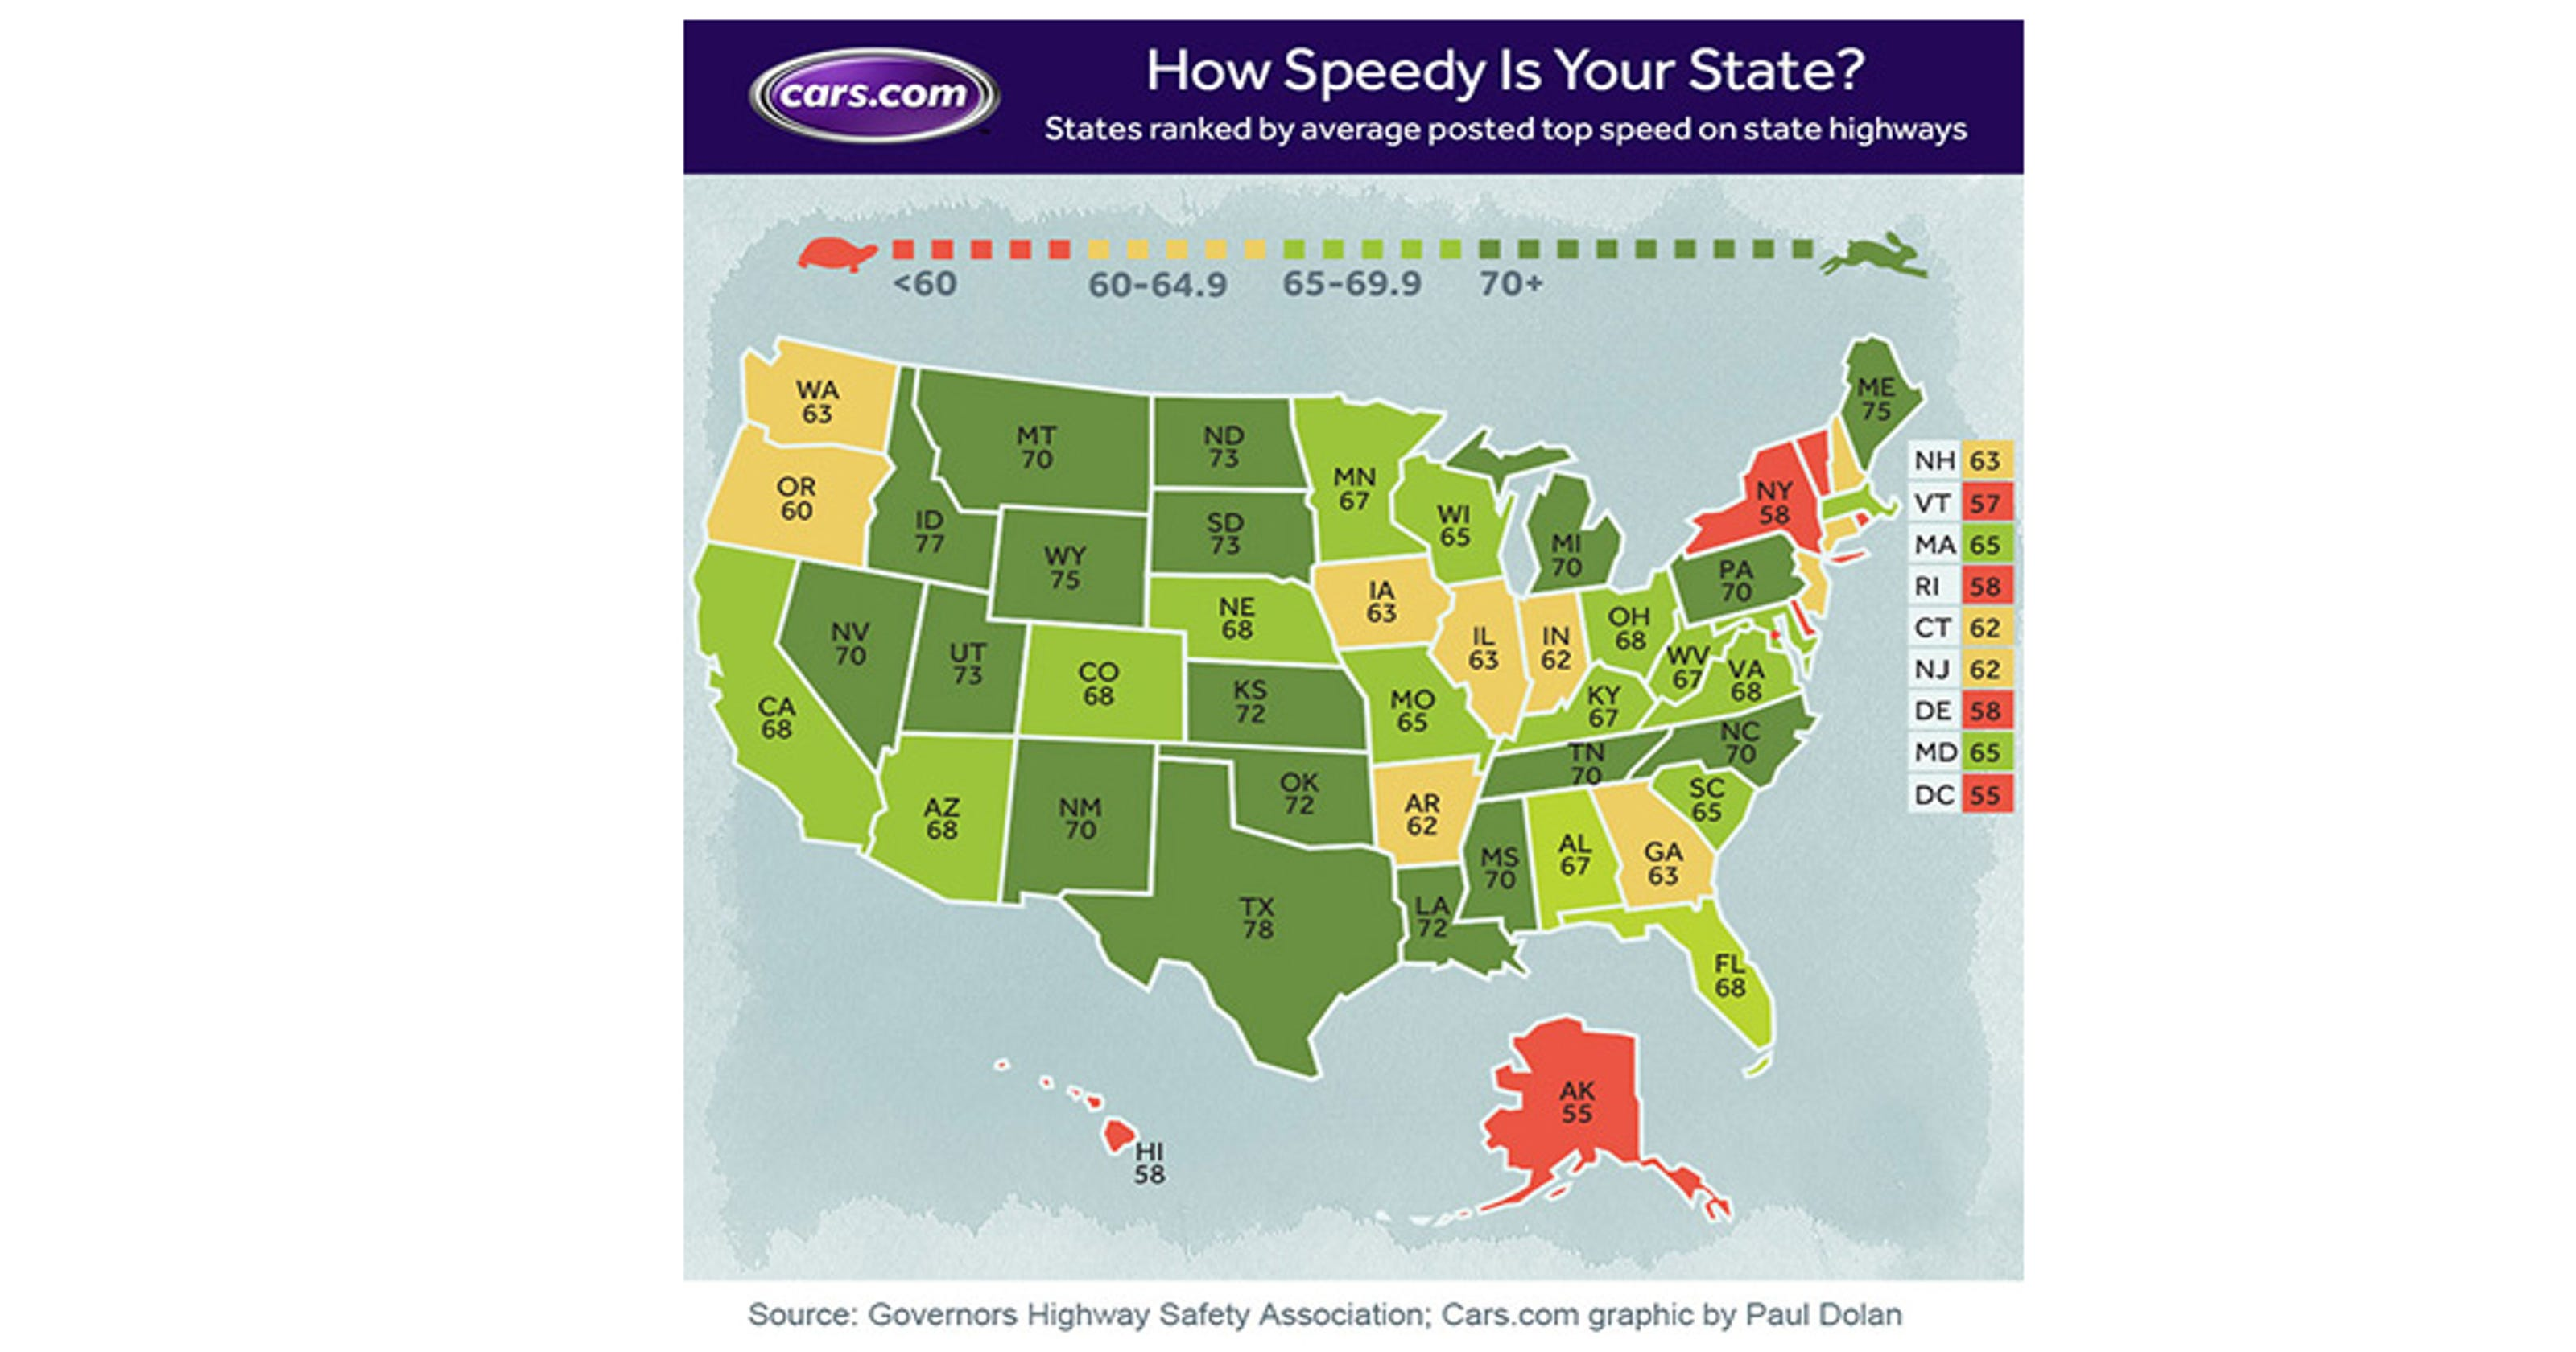 Fastest Slowest States Where Your State Ranks